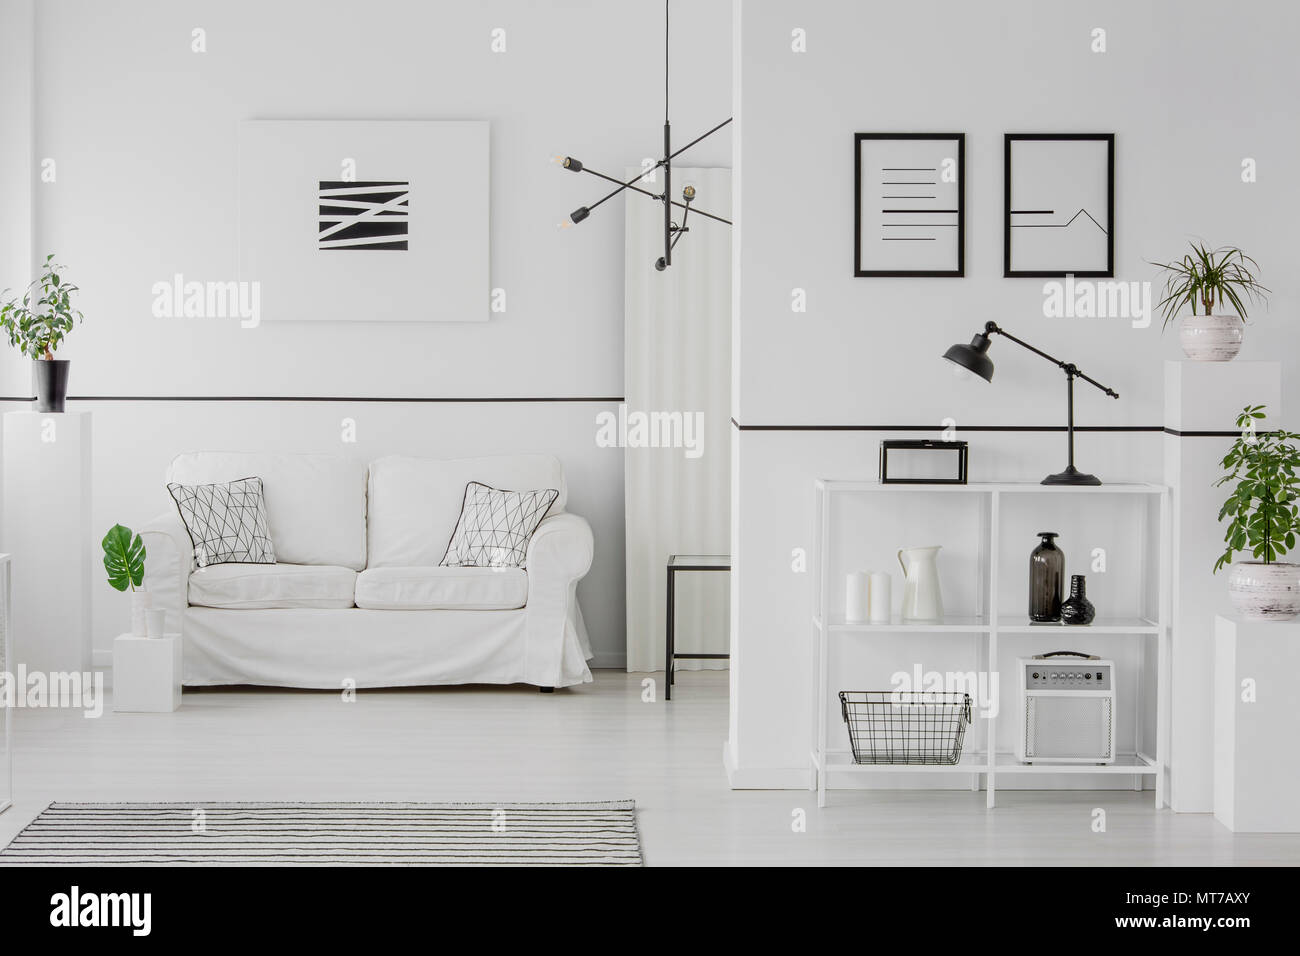 Black and white living room interior with comfy sofa, patterned pillows, simple posters and green plants - Stock Image